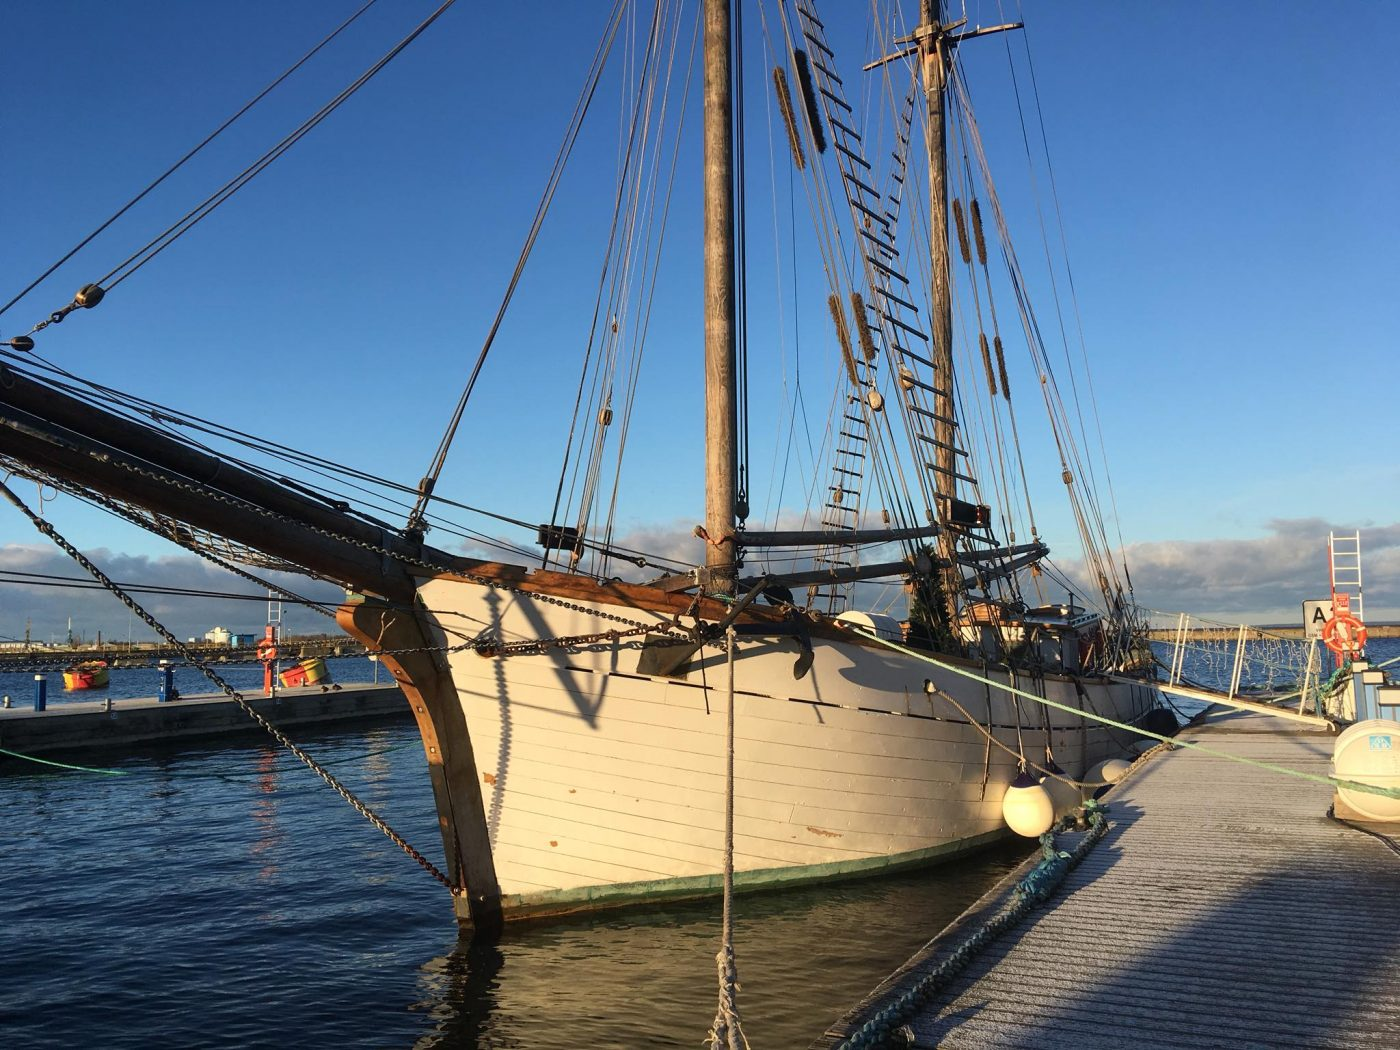 "INCENTIVE IDEA FOR GROUPS: Breakfast or dinner at Tallinn Bay at only genuine Estonian gaff schooner ""Hoppet"""